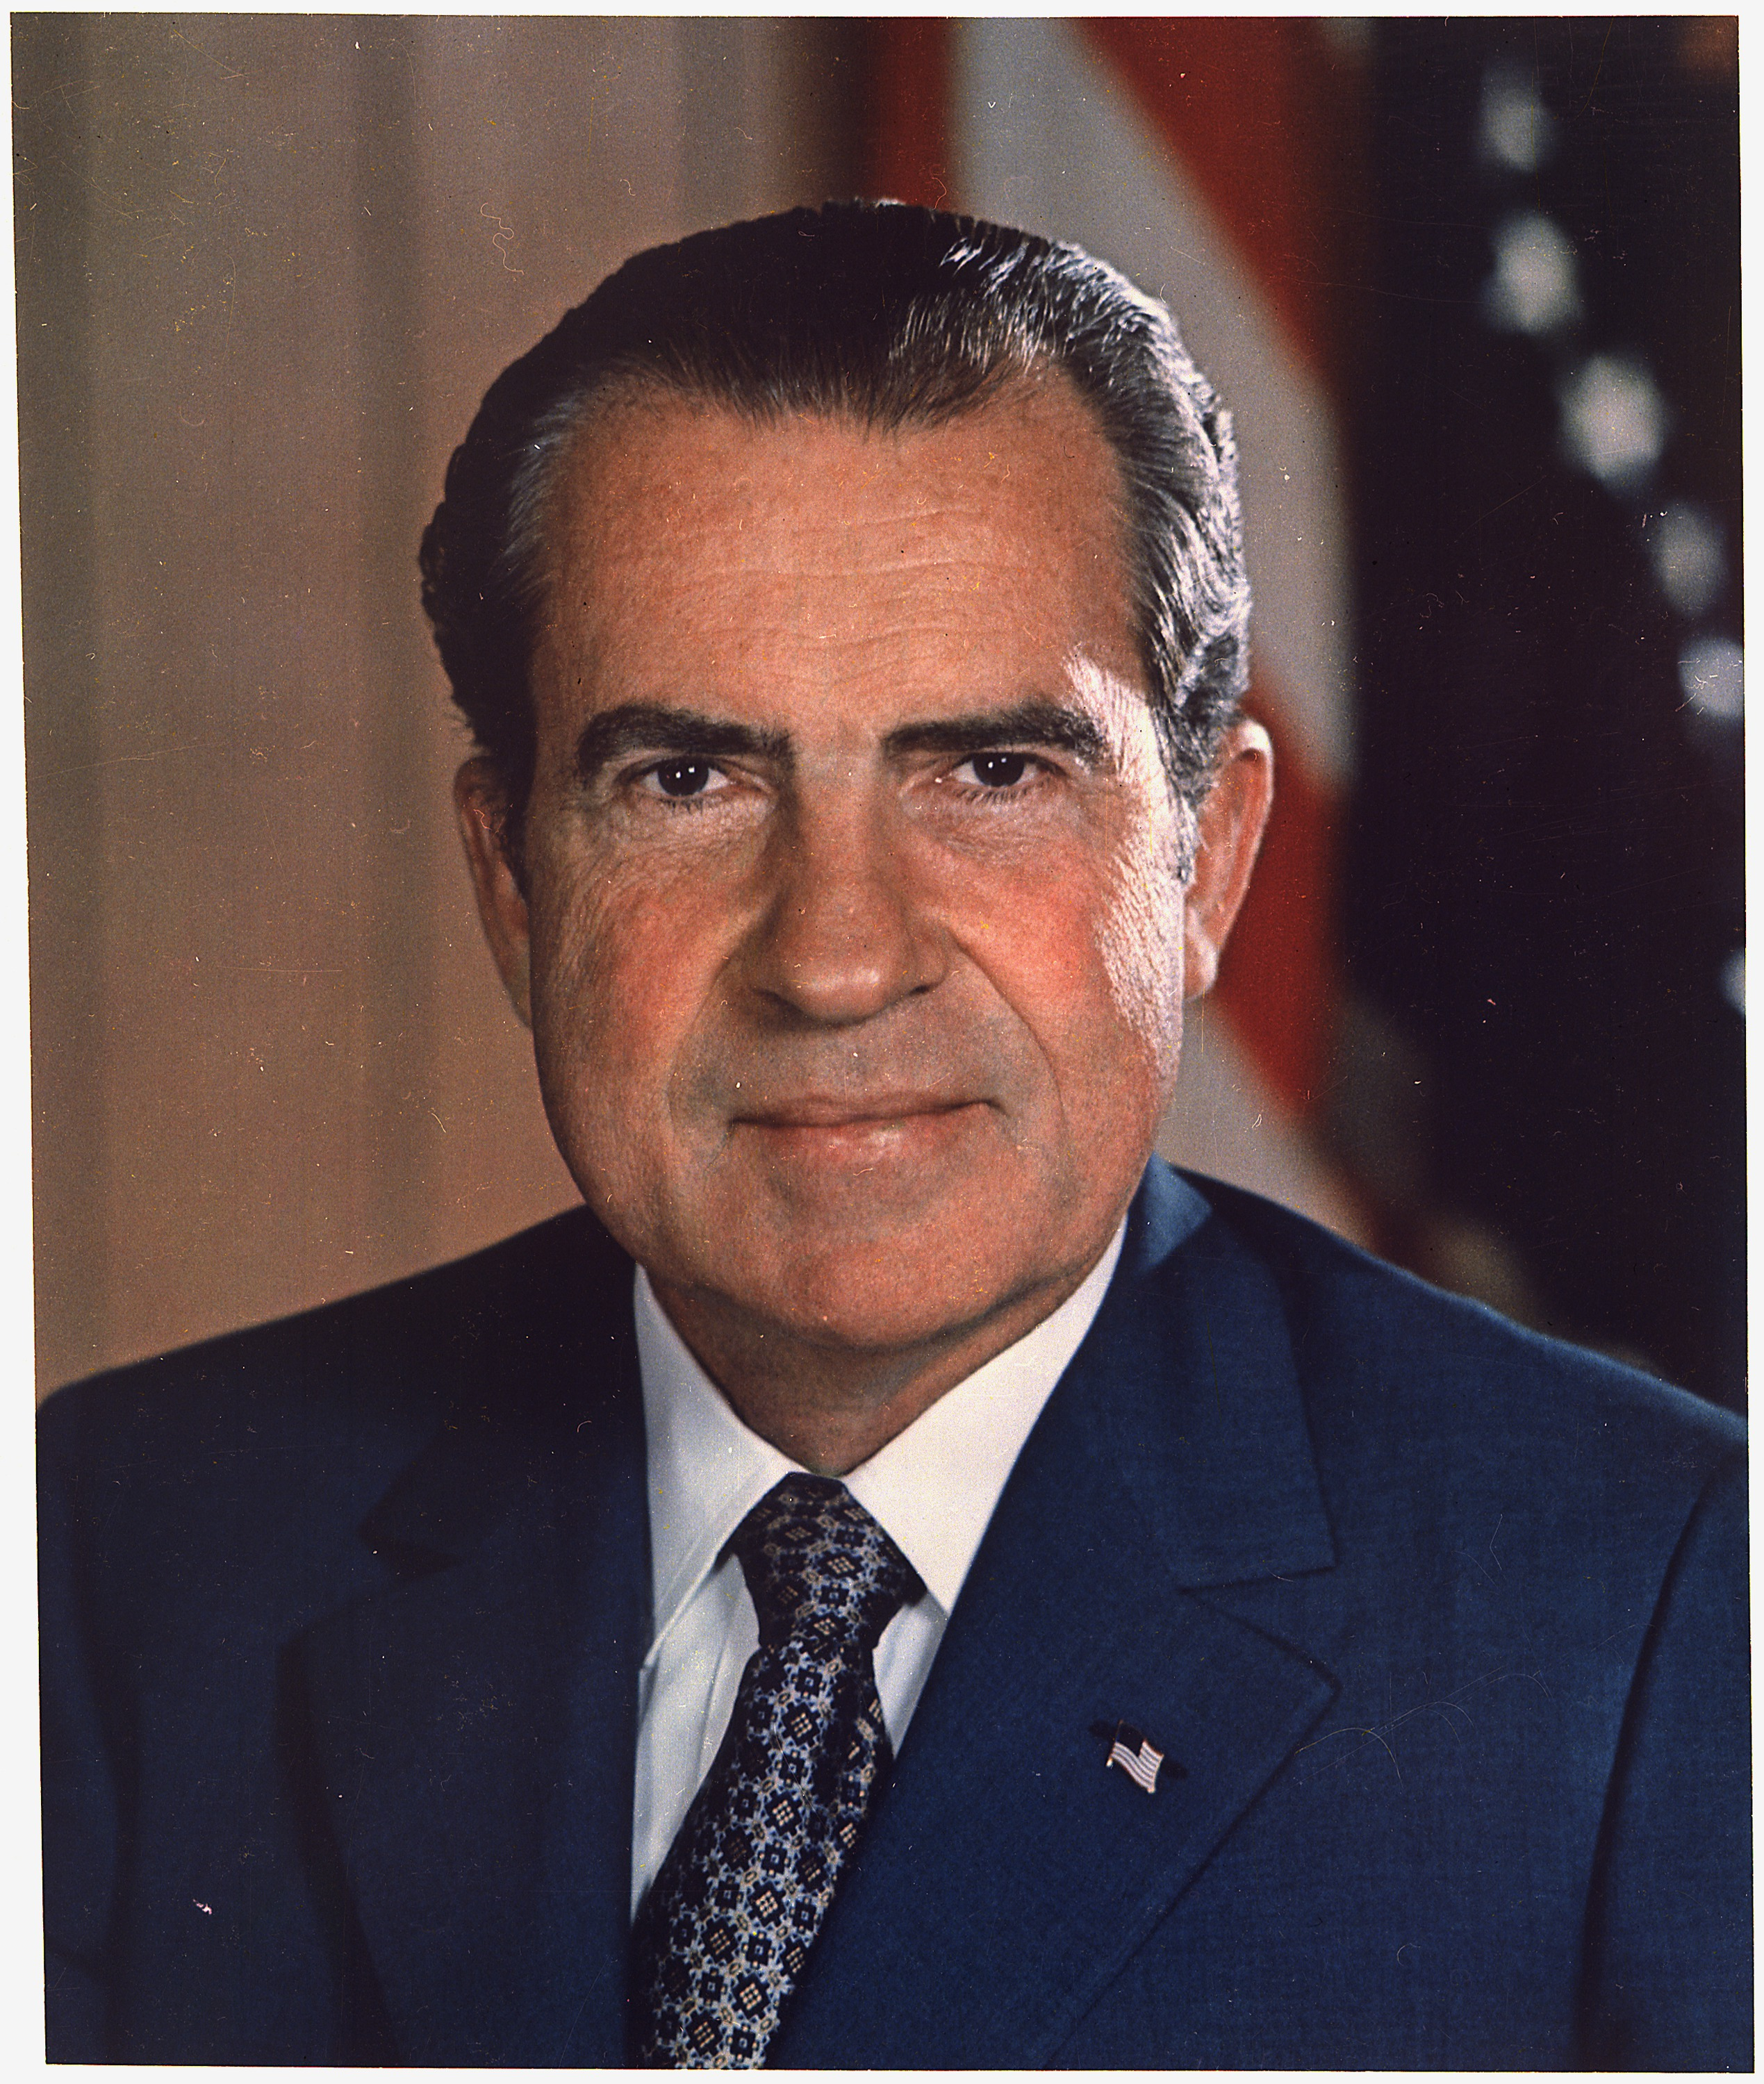 "President Richard Nixon declares War on Cancer by introducing the National Cancer Act. He says the following during his 1971 State of the Union.""I will also ask for an appropriation of an extra $100 million to launch an intensive campaign to find a cure for cancer, and I will ask later for whatever additional funds can effectively be used. The time has come in America when the same kind of concentrated effort that split the atom and took man to the moon should be turned toward conquering this dread disease. Let us make a total national commitment to achieve this goal.""121. Rettig, Richard. Cancer Crusade: The Story of the National Cancer Act of 1971. iUniverse, 20052. National Cancer Institute. The National Cancer Act of 1971. www.cancer.gov/aboutnci/national-cancer-act-1971/allpages"